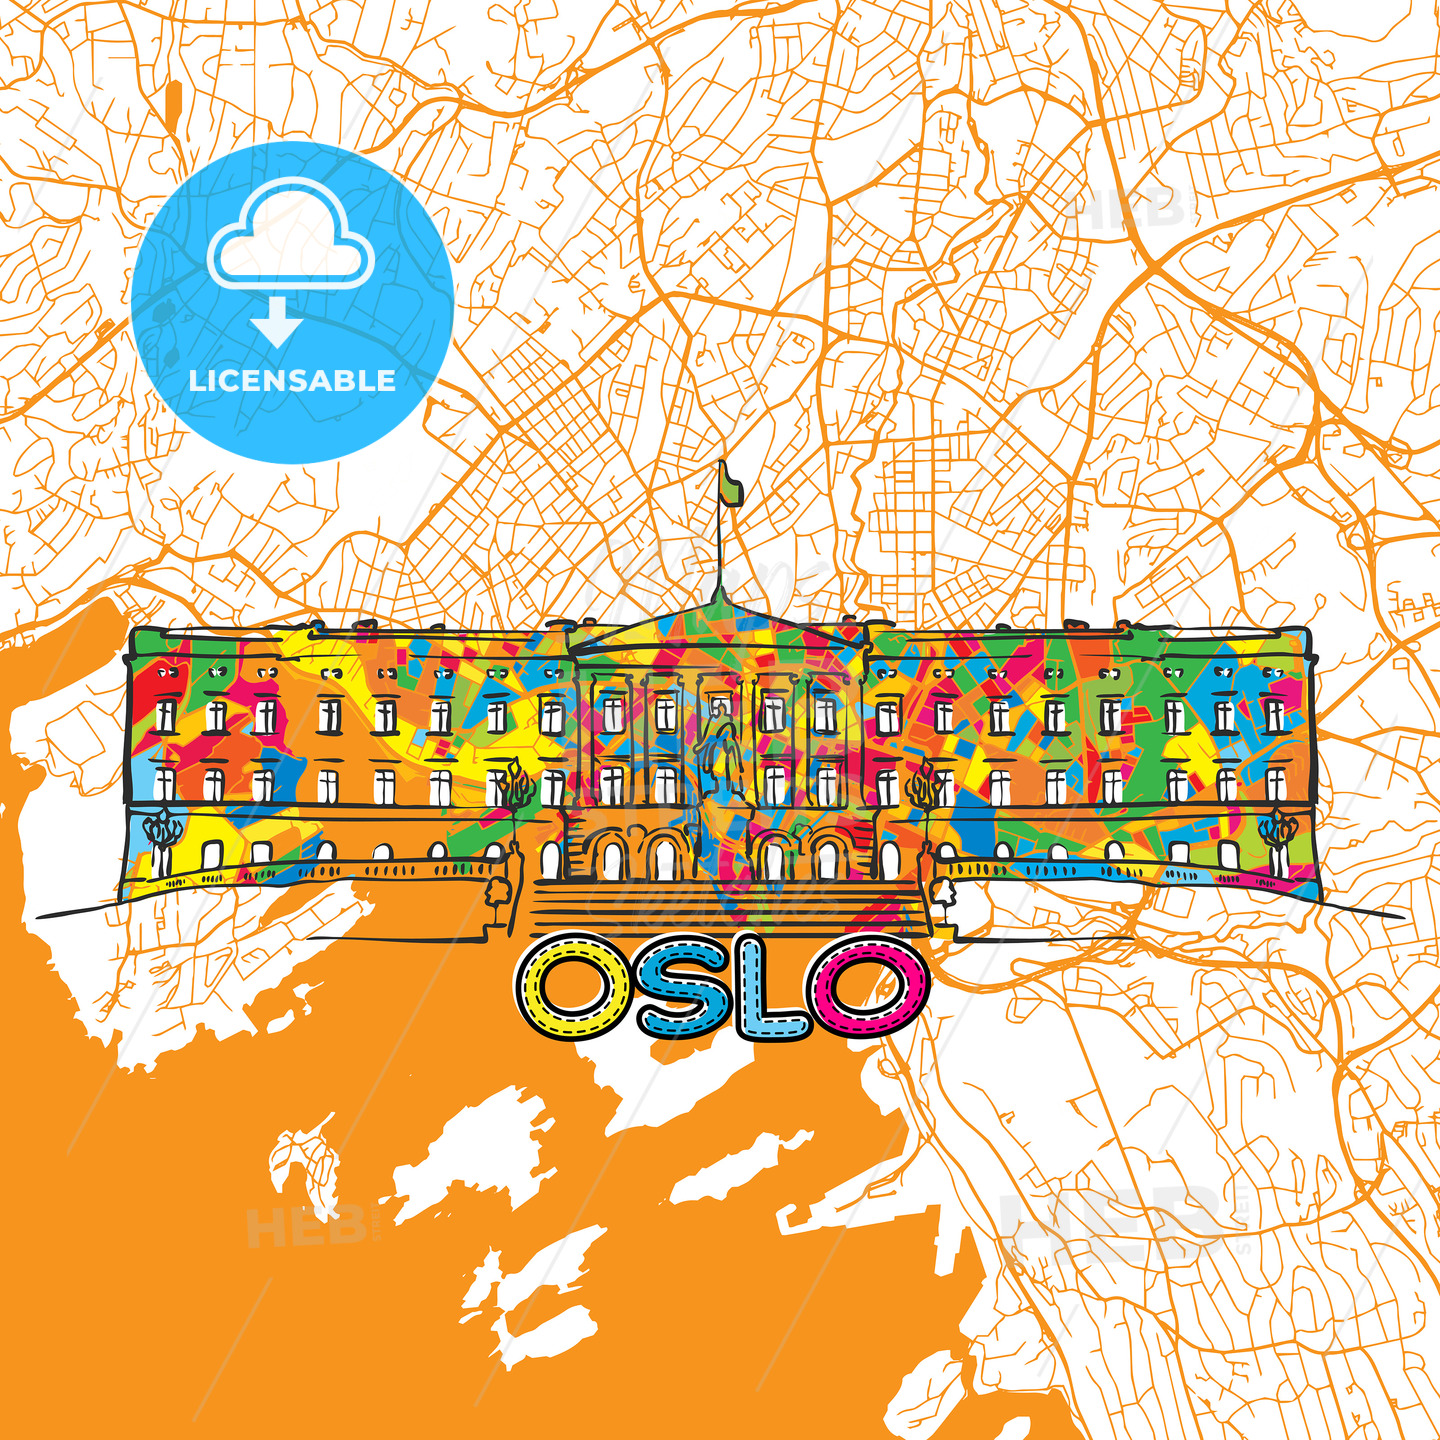 Oslo Travel Art Map - HEBSTREITS